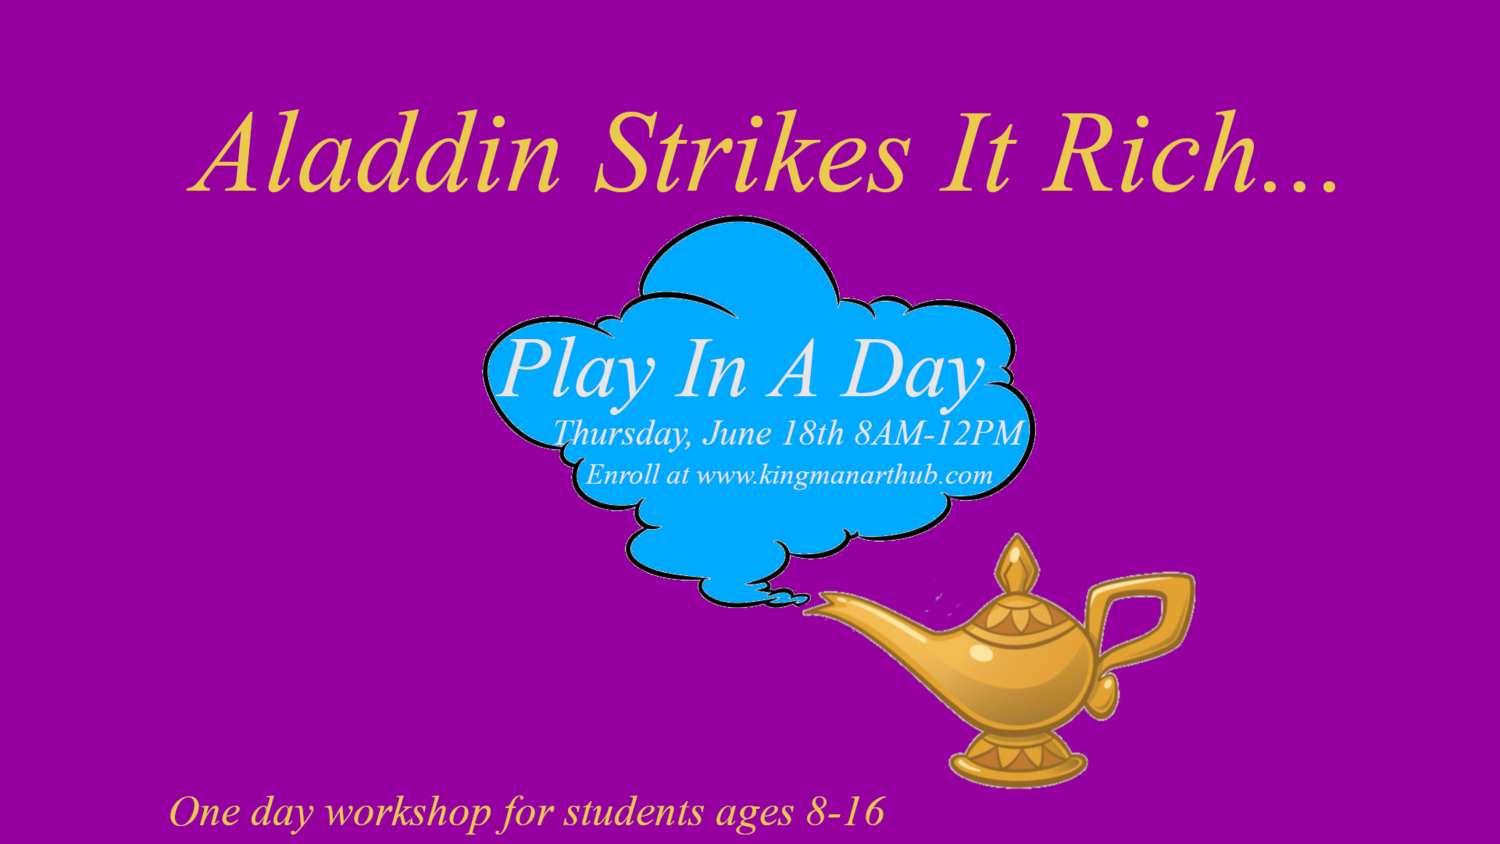 Aladdin Strikes It Rich- Play in a Day